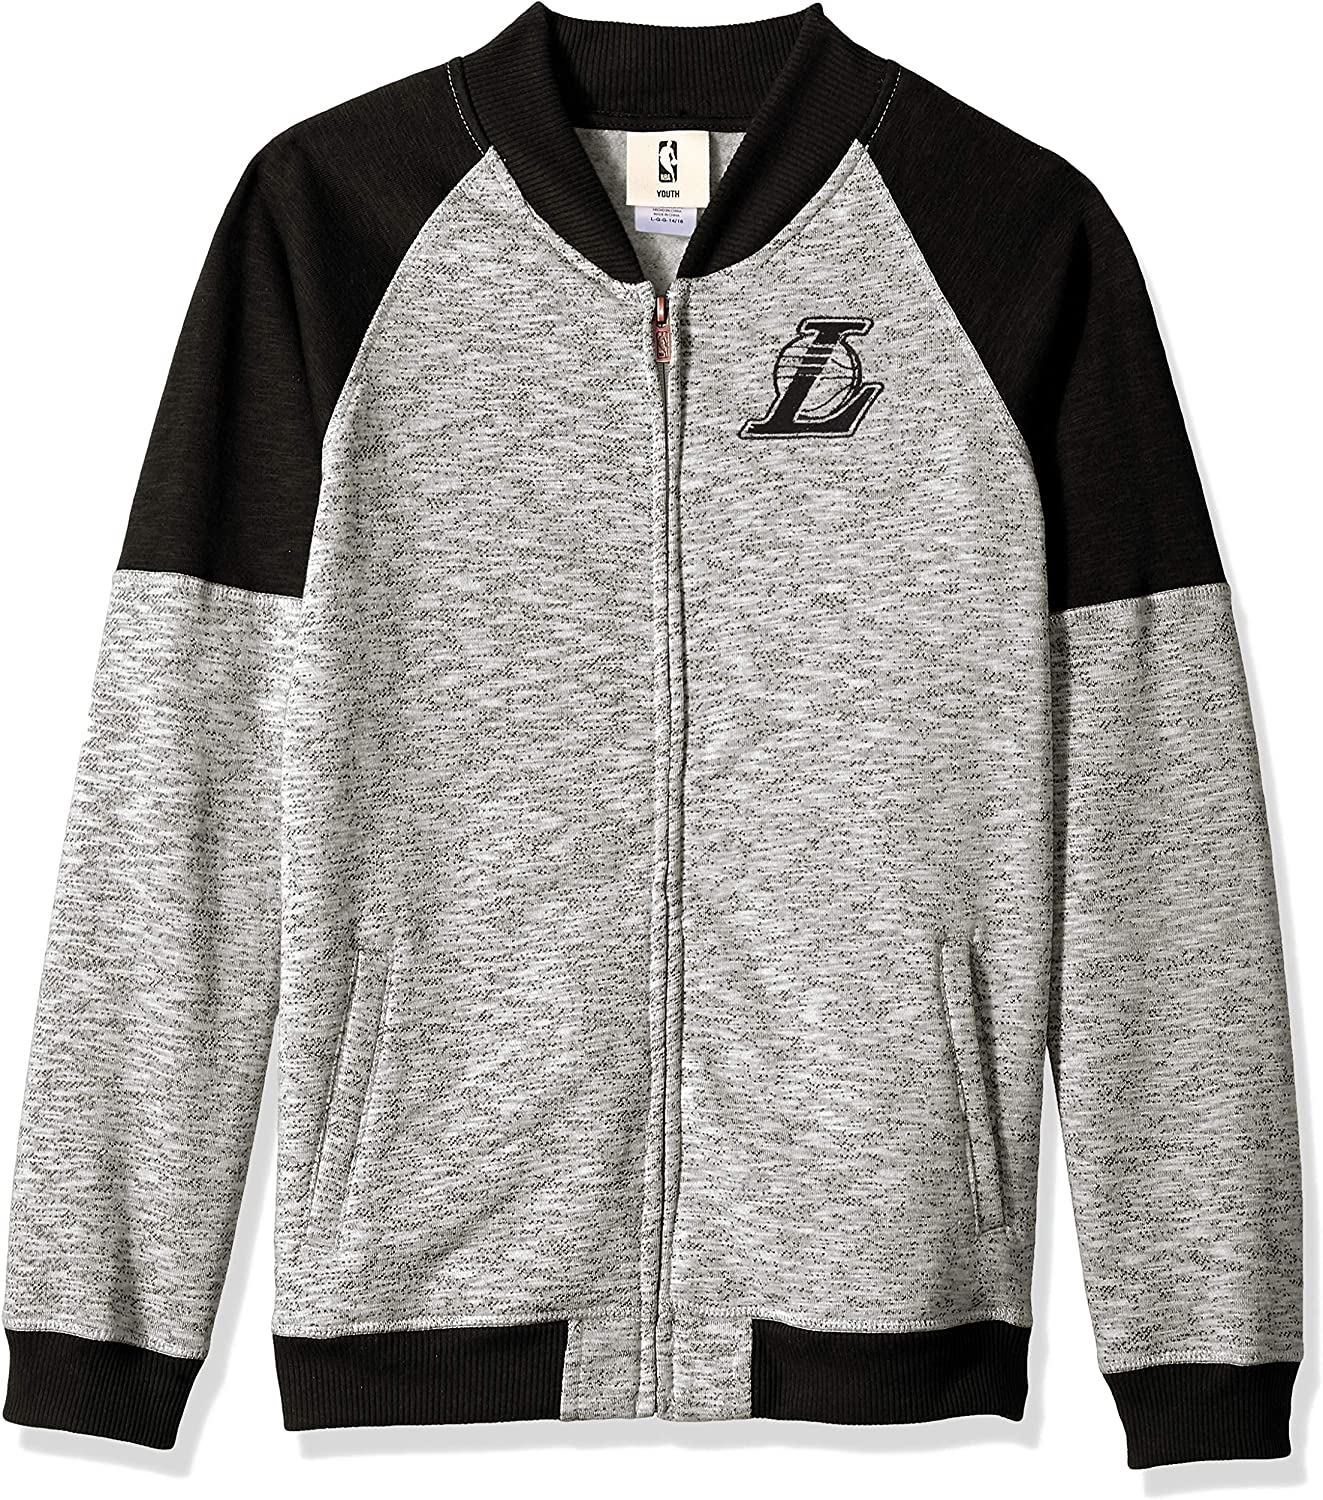 8 NBA by Outerstuff NBA Youth Boys Los Angeles Lakers Game Changer Full Zip Jacket Heather Grey Youth Small